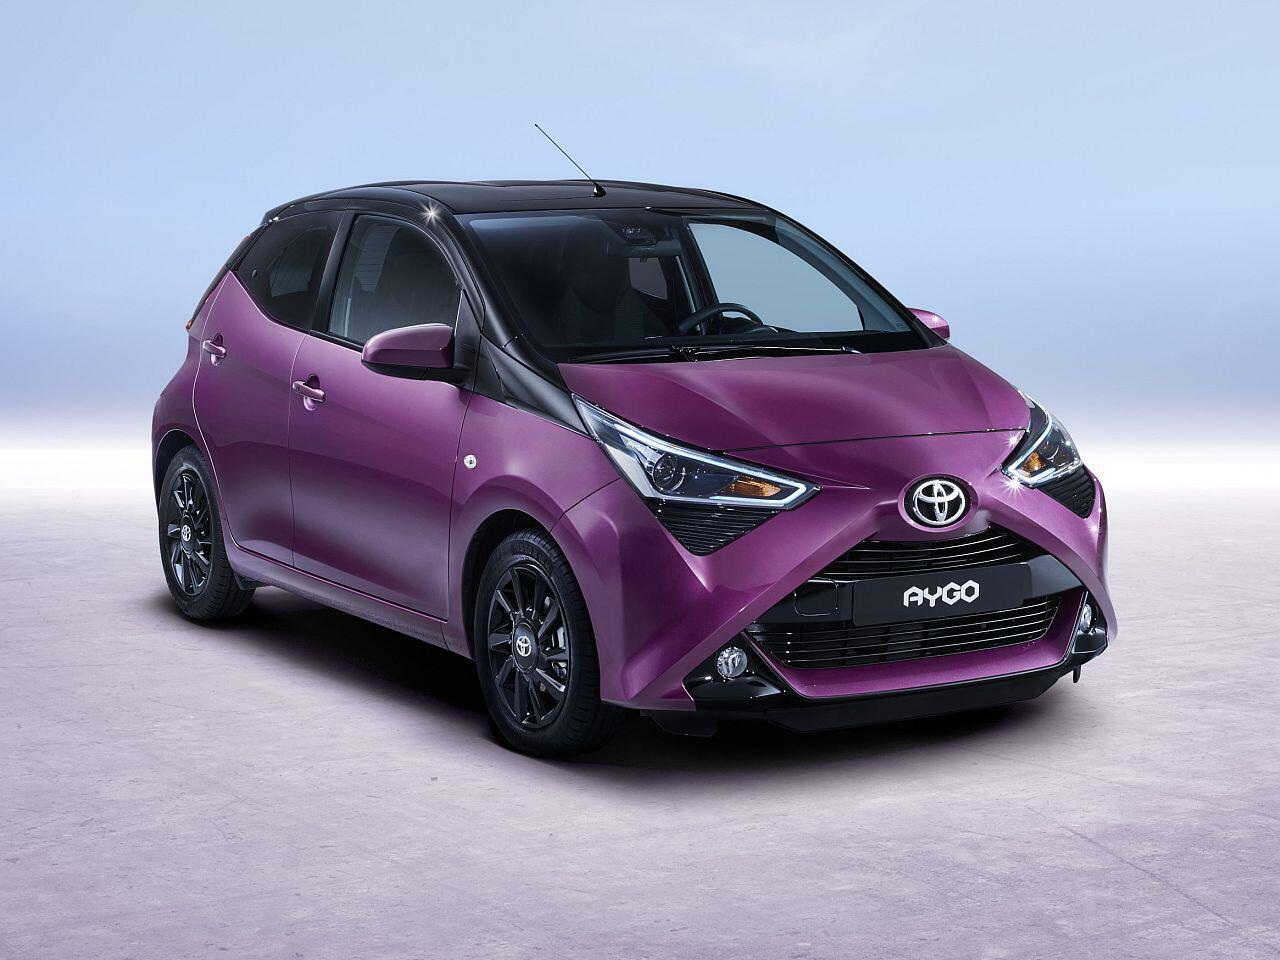 toyota aygo facelift kleinwagen wird noch individueller bunter und sicherer web de. Black Bedroom Furniture Sets. Home Design Ideas